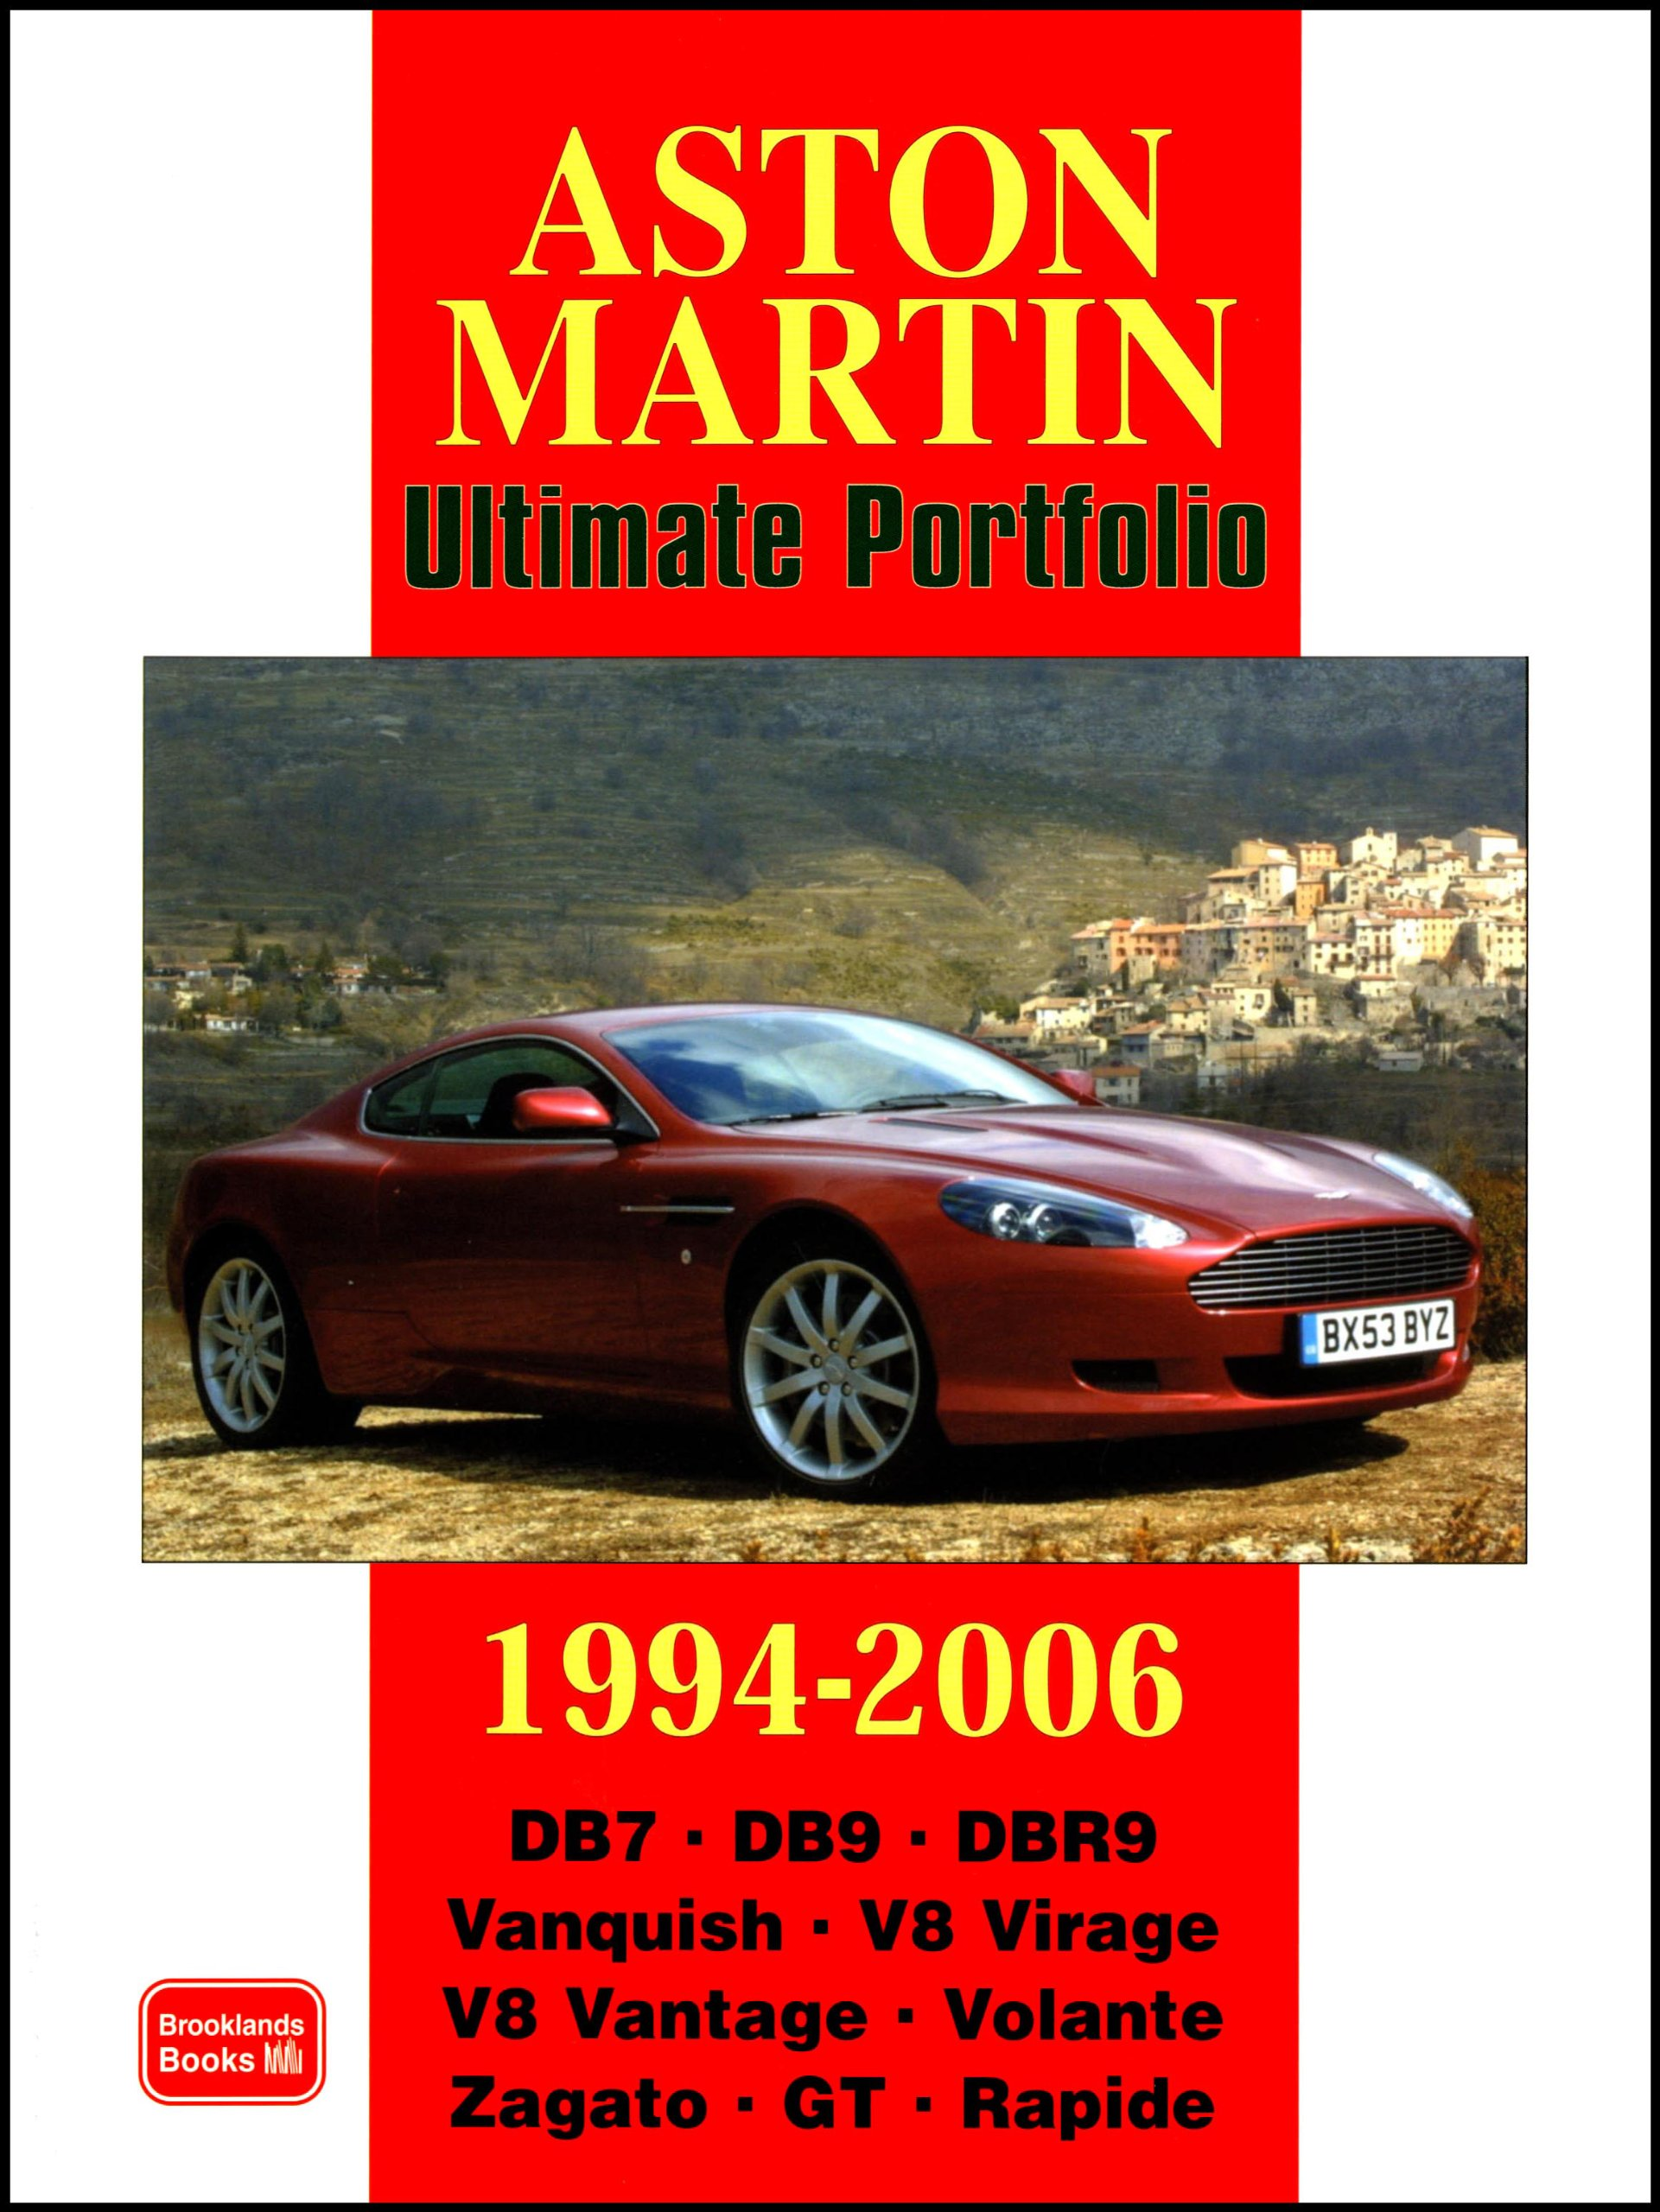 Download Aston Martin Ultimate Portfolio 1994-2006 PDF